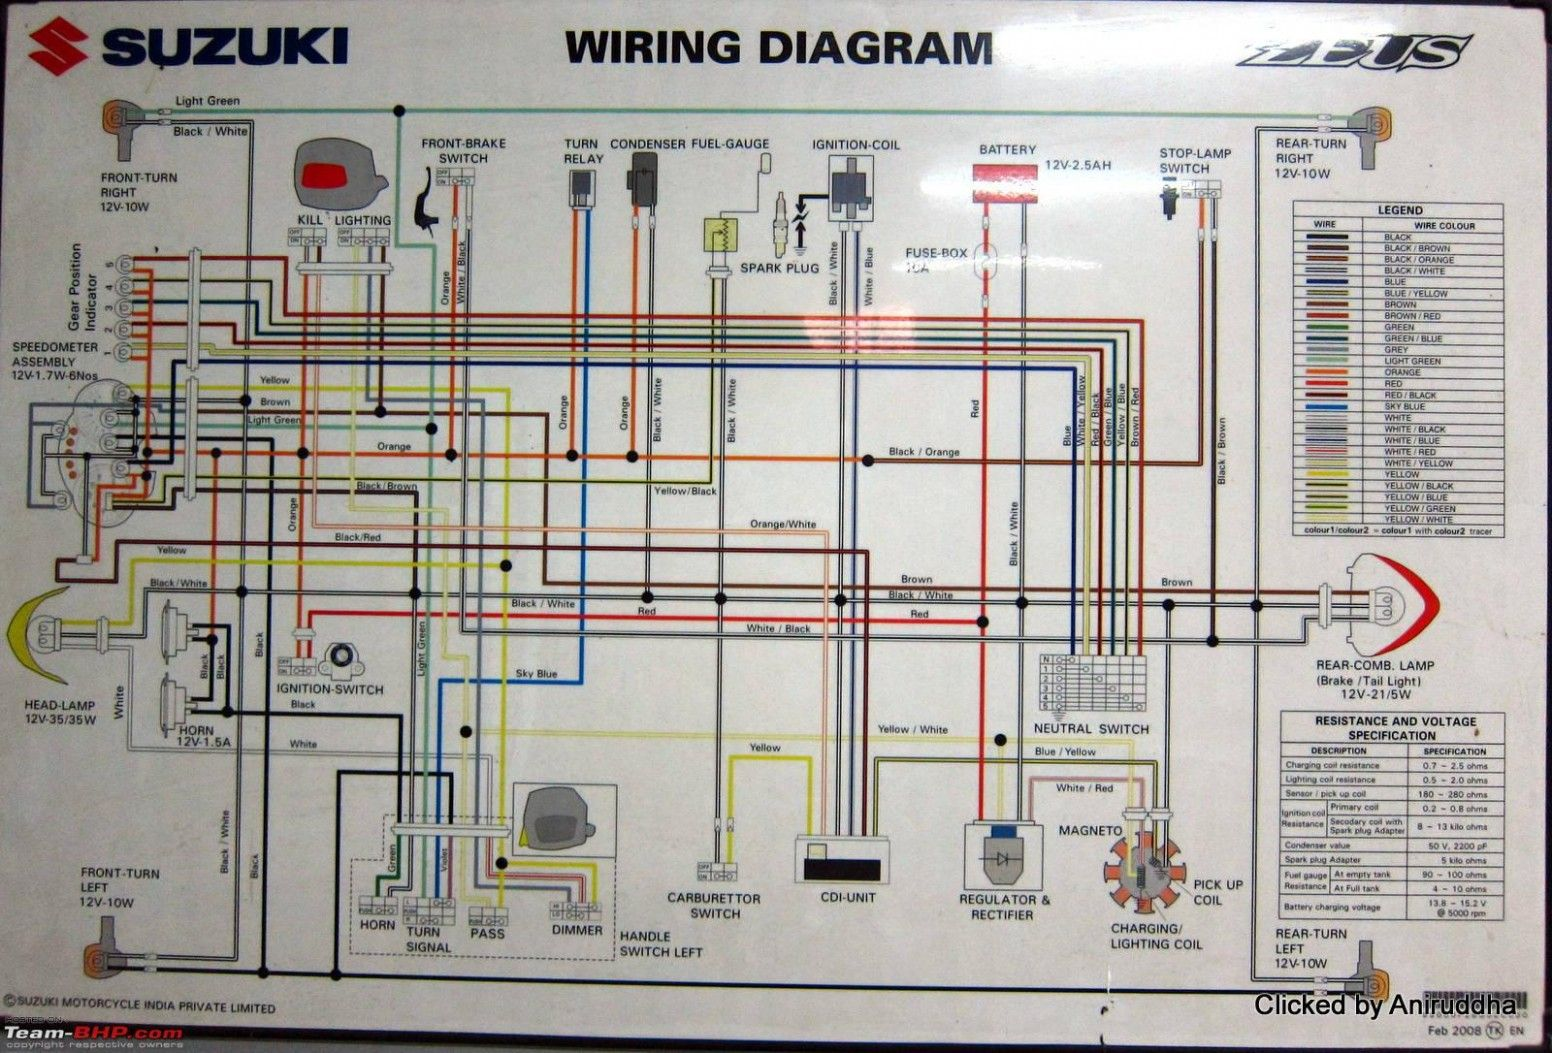 Tvs Motorcycle Engine Diagram | Motorcycle wiring, Diagram design,  Electrical wiring diagram | Tvs Motorcycle Wiring Diagram |  | Pinterest